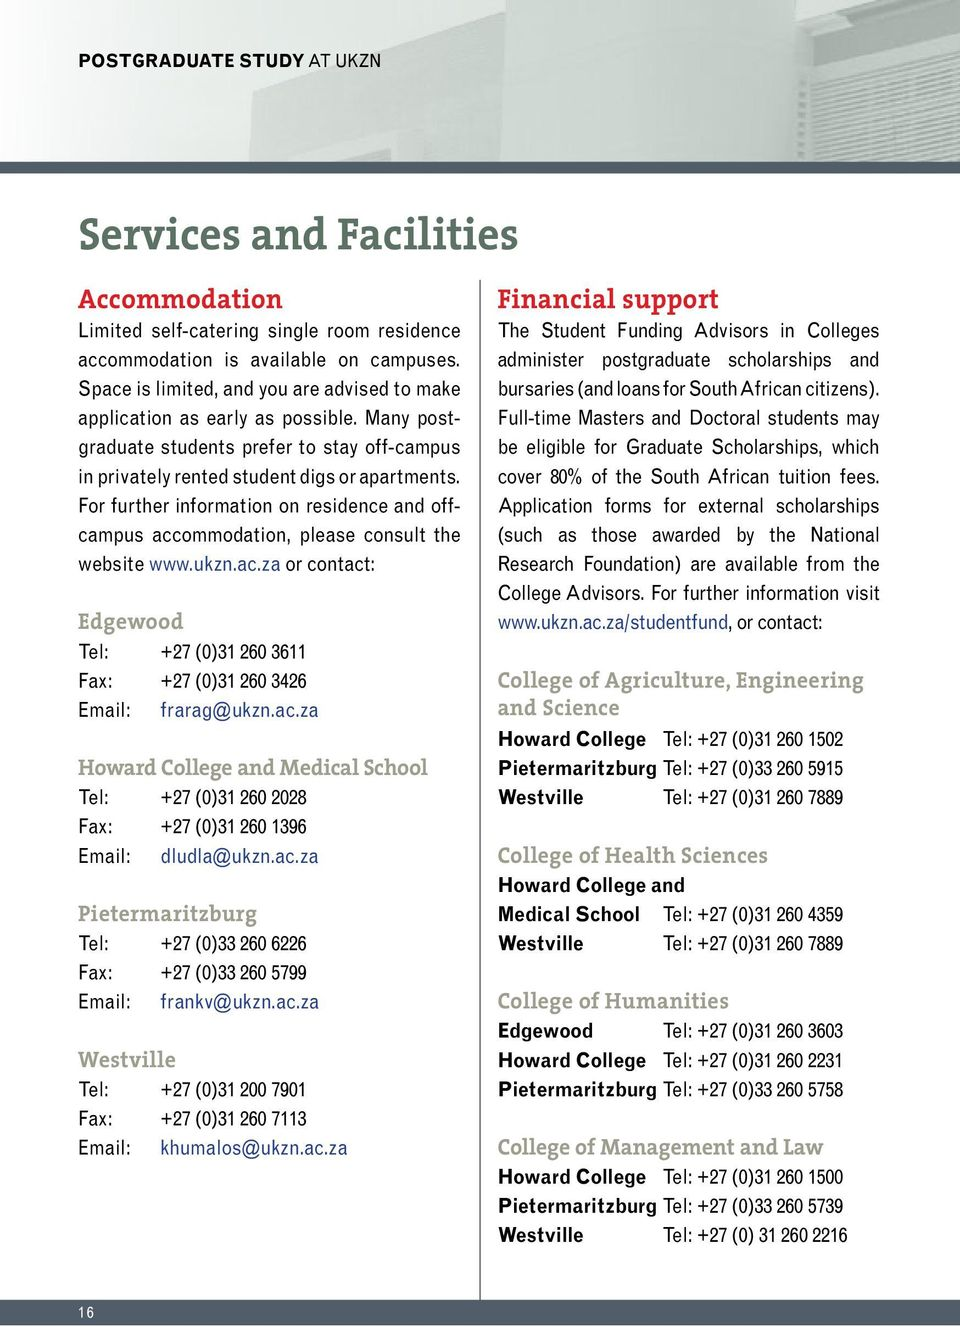 For further information on residence and offcampus accommodation, please consult the website www.ukzn.ac.za or contact: Edgewood Tel: +27 (0)31 260 3611 Fax: +27 (0)31 260 3426 Email: frarag@ukzn.ac.za Howard College and Medical School Tel: +27 (0)31 260 2028 Fax: +27 (0)31 260 1396 Email: dludla@ukzn.